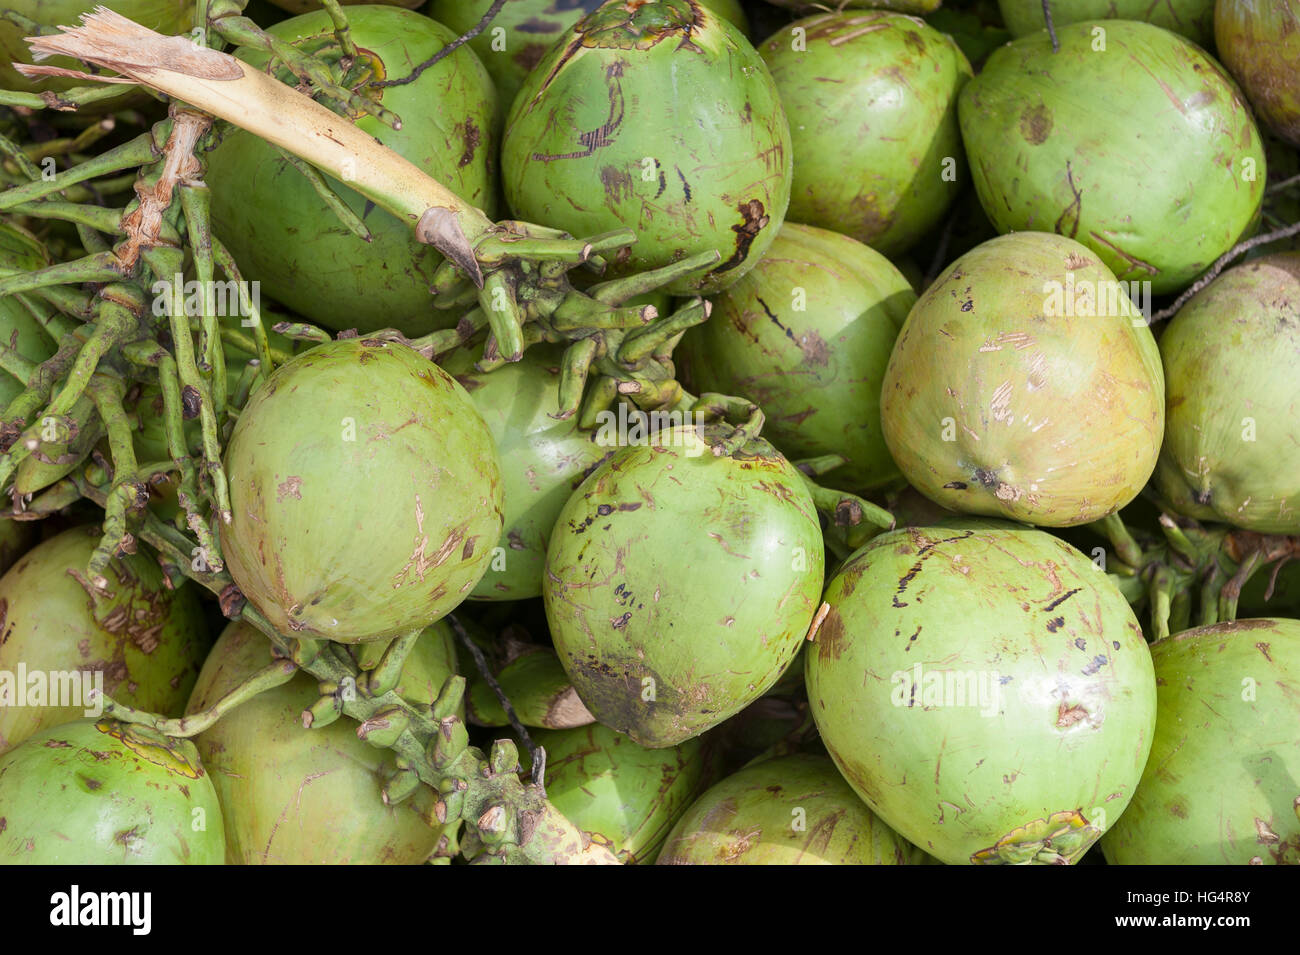 Pile of fresh green coco verde drinking coconuts - Stock Image